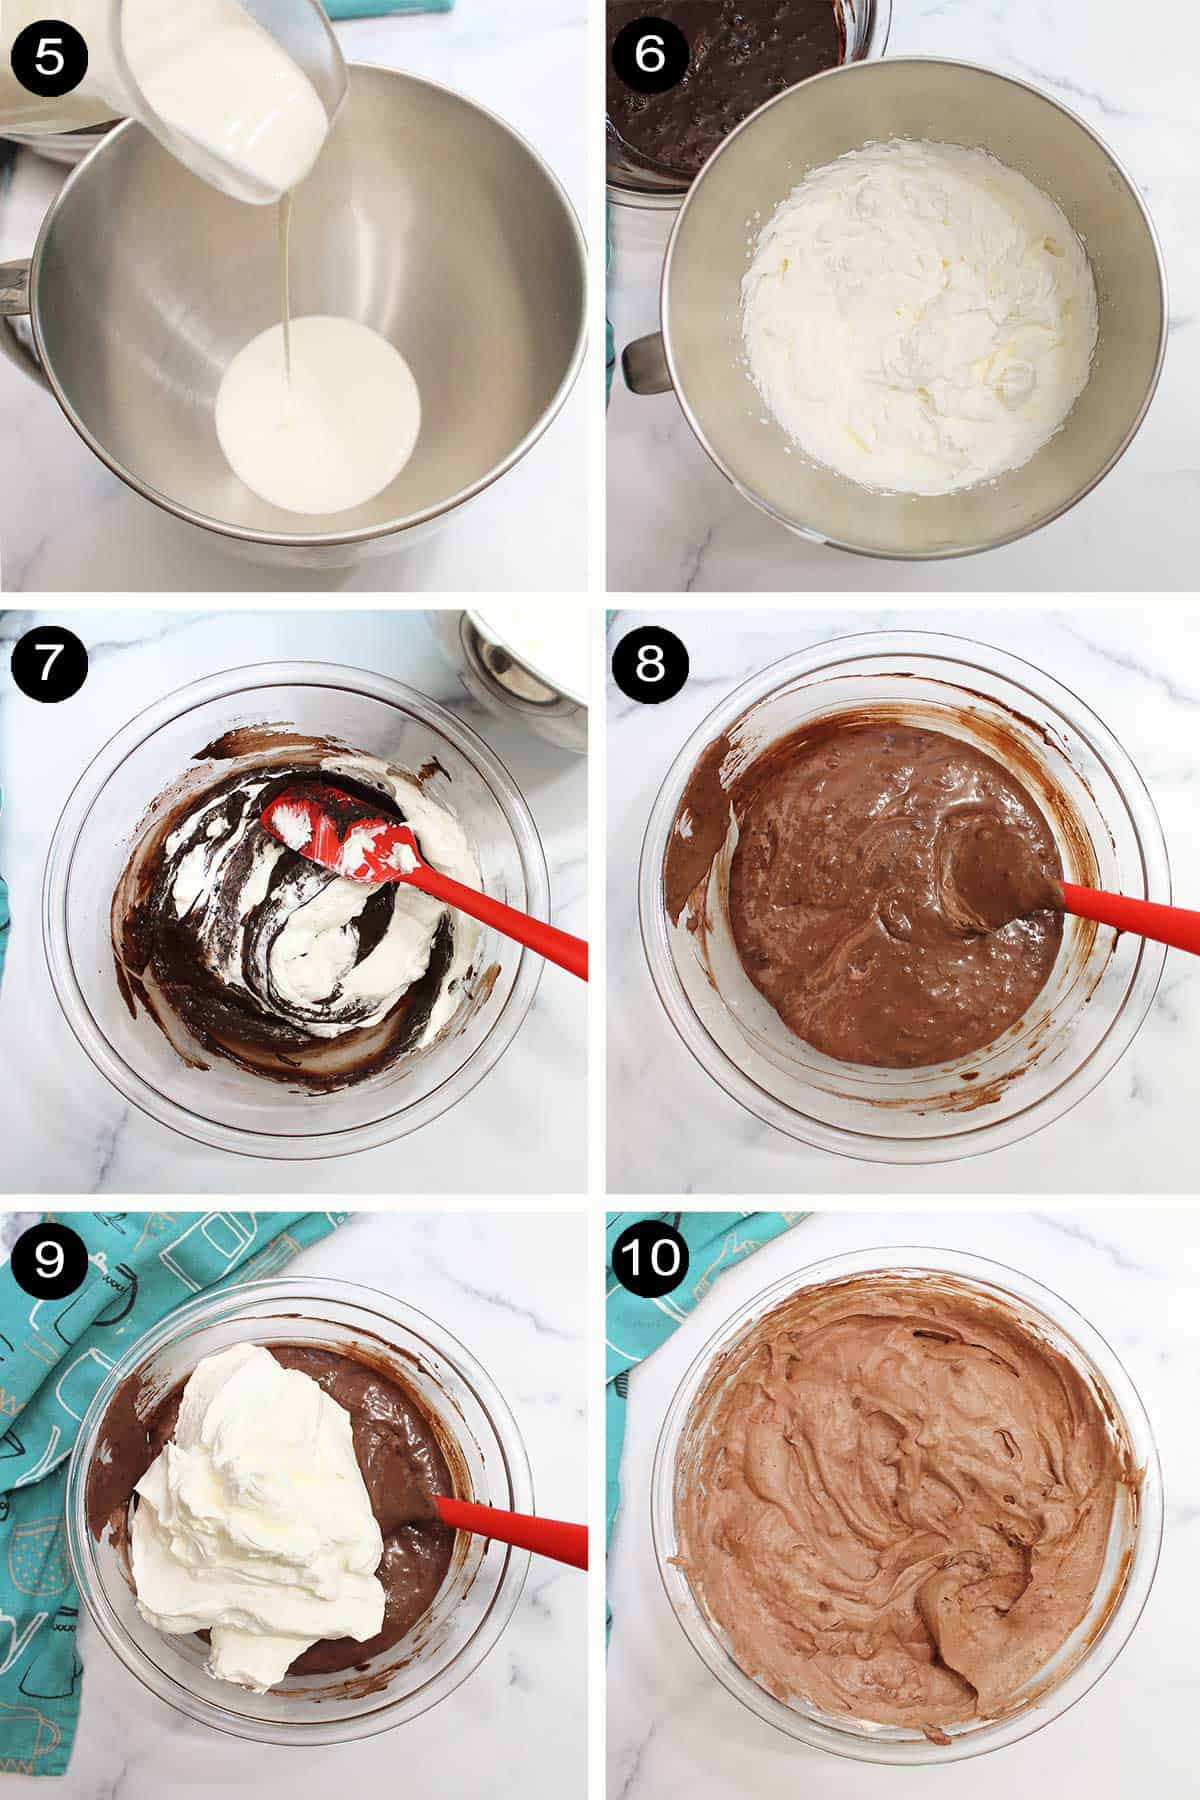 Whipped cream steps and adding to chocolate mixture.